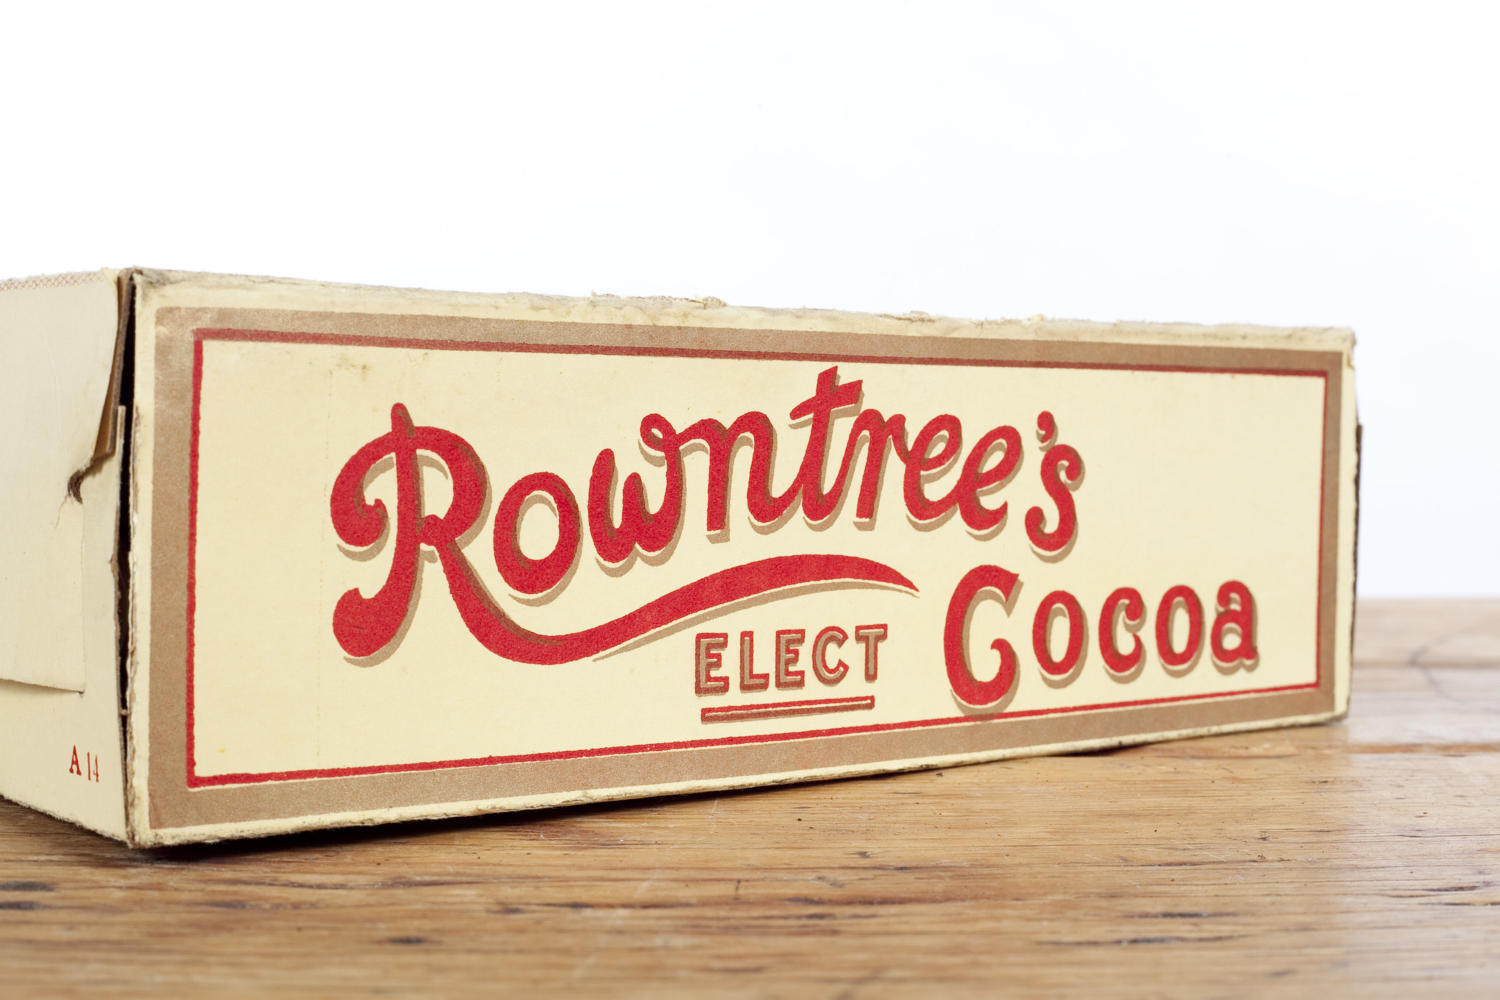 Rowntree's Elect Cocoa dummy packet.